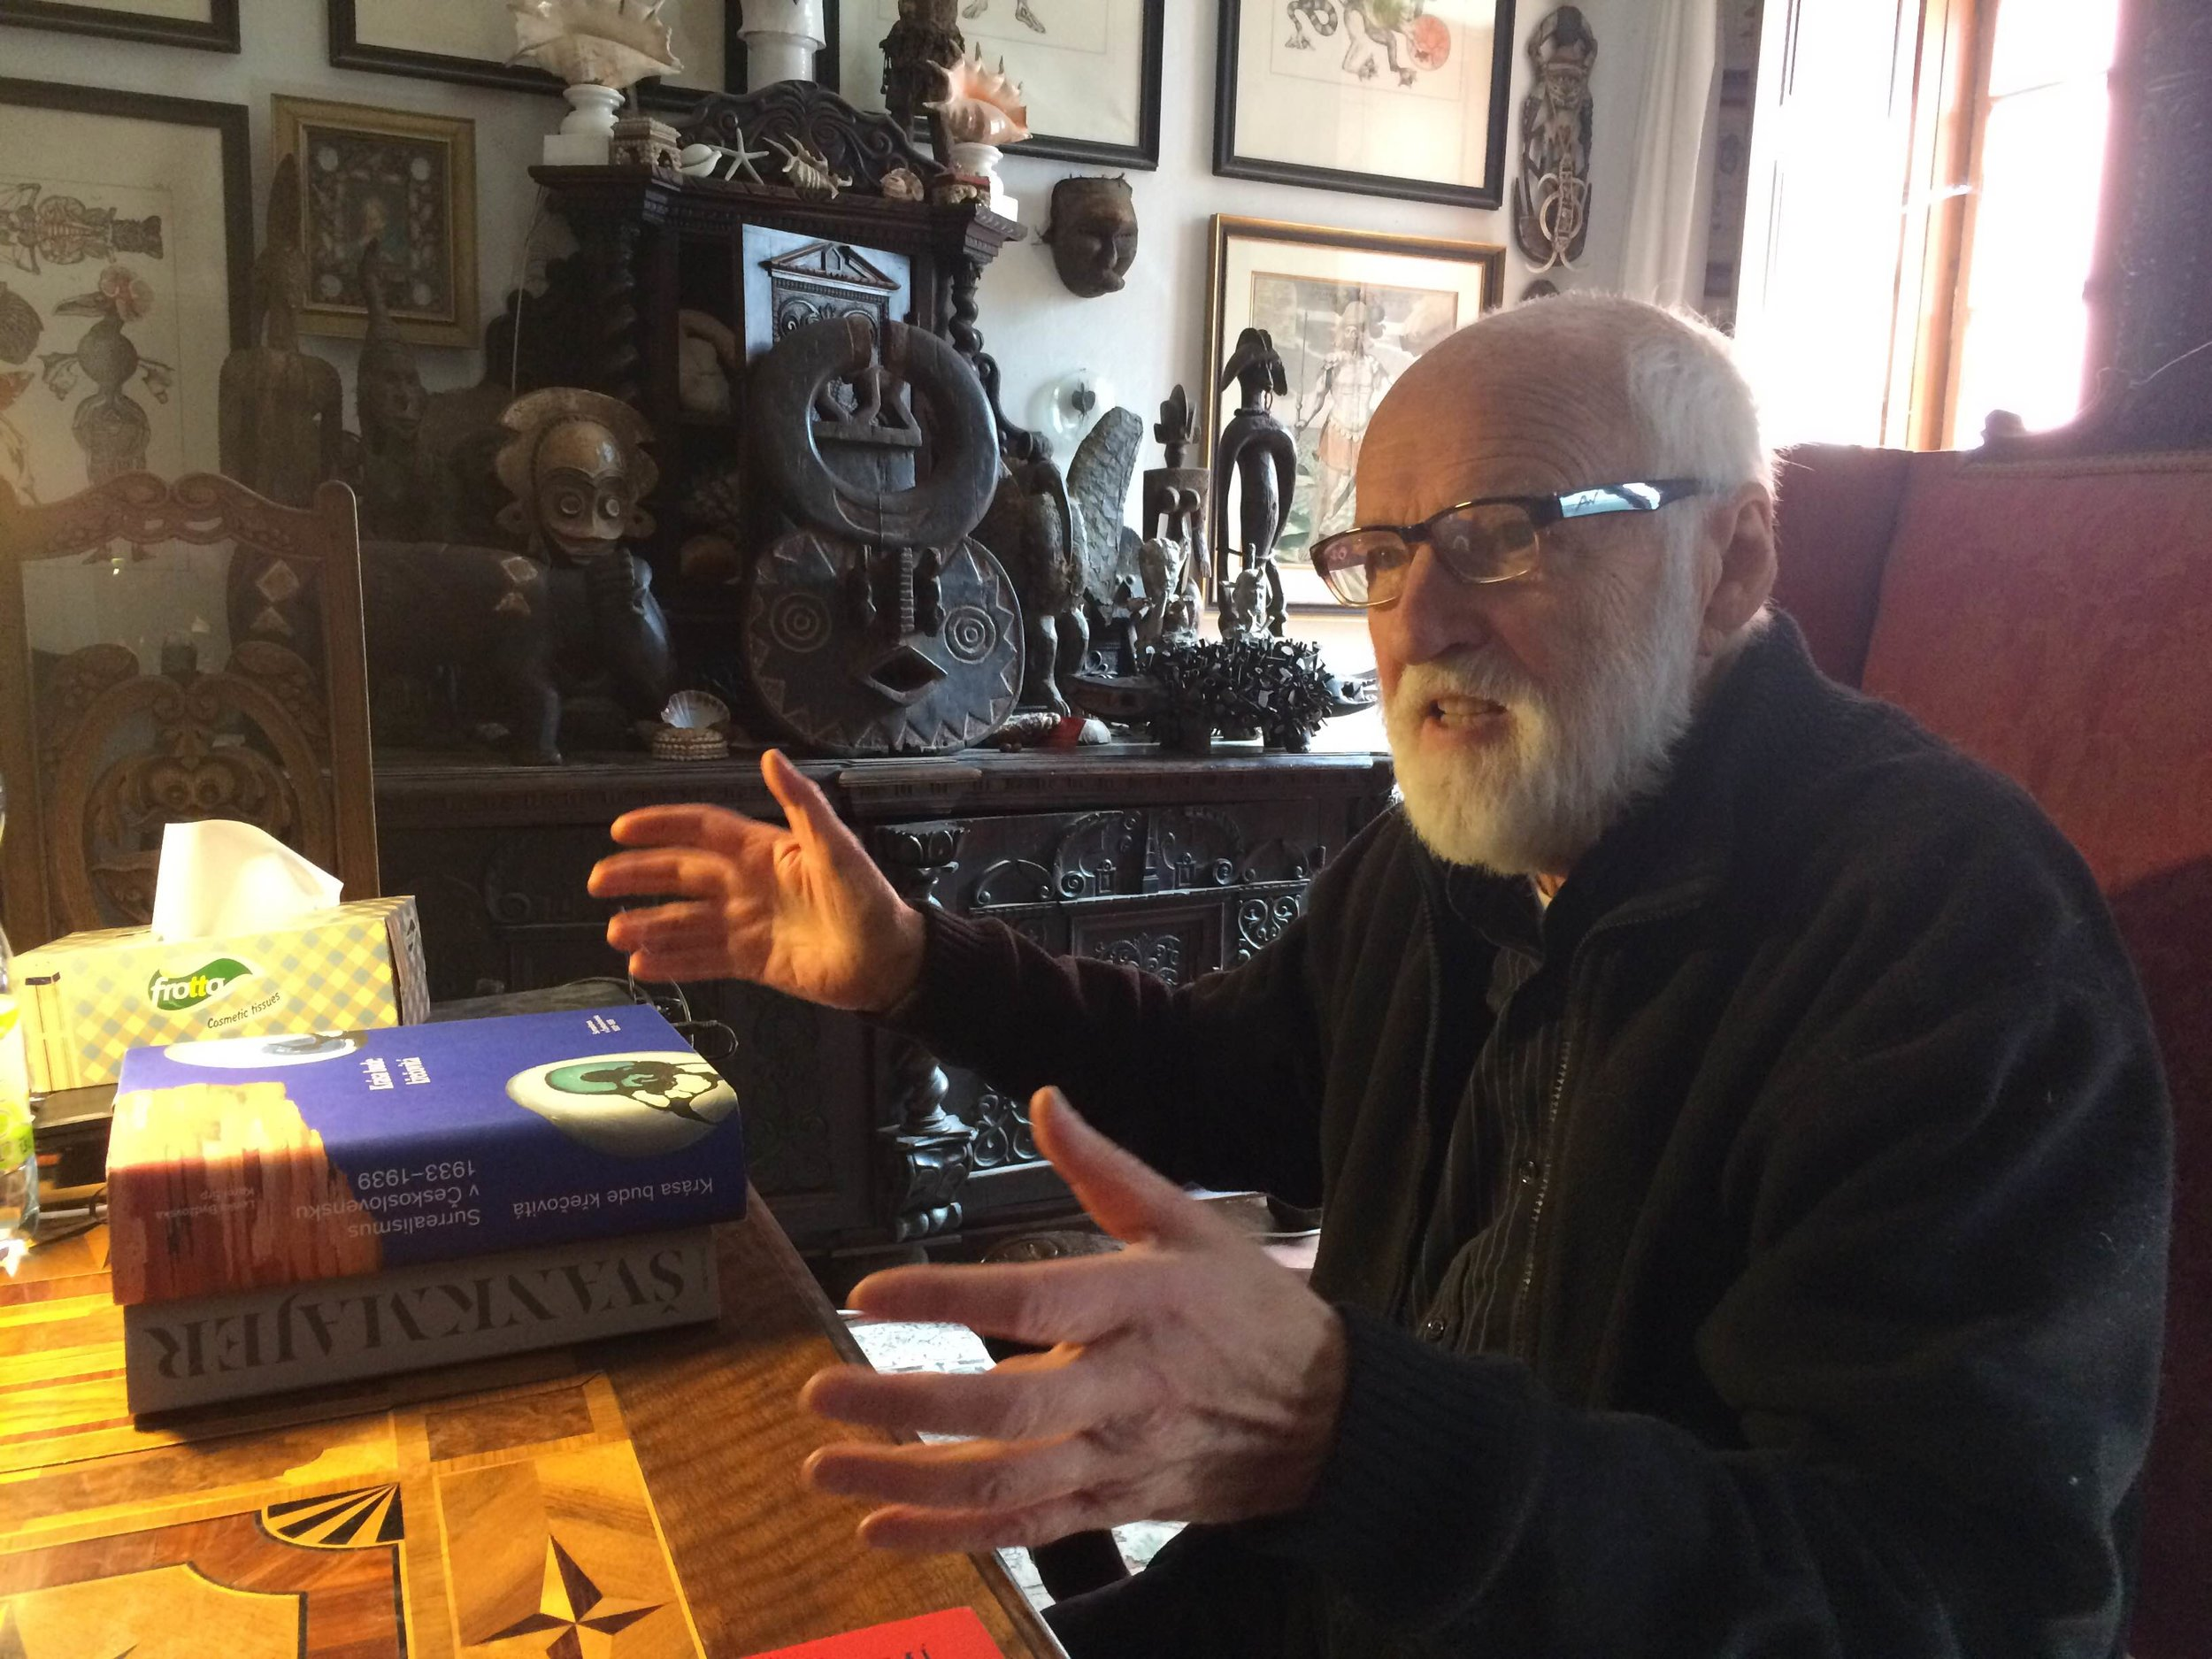 Jan Svankmajer in his study, August 2016.